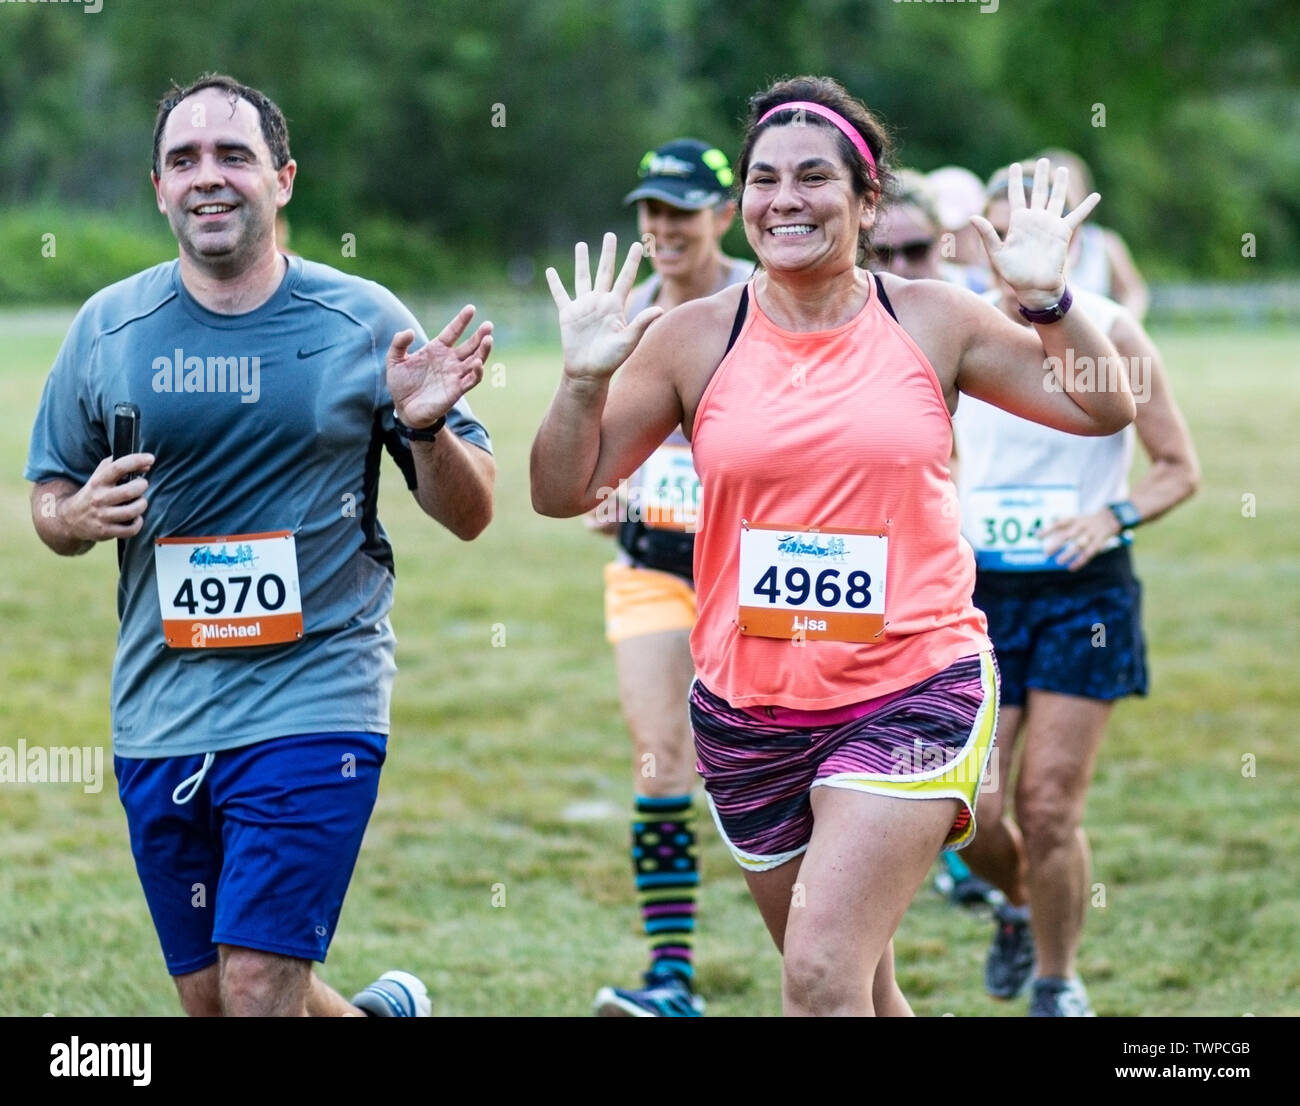 Kings Park, New York, USA - 17 June 2019: Excited runners waving to camera suring the New York State Parks summer seiries 10K run at Sunken Meadow. - Stock Image